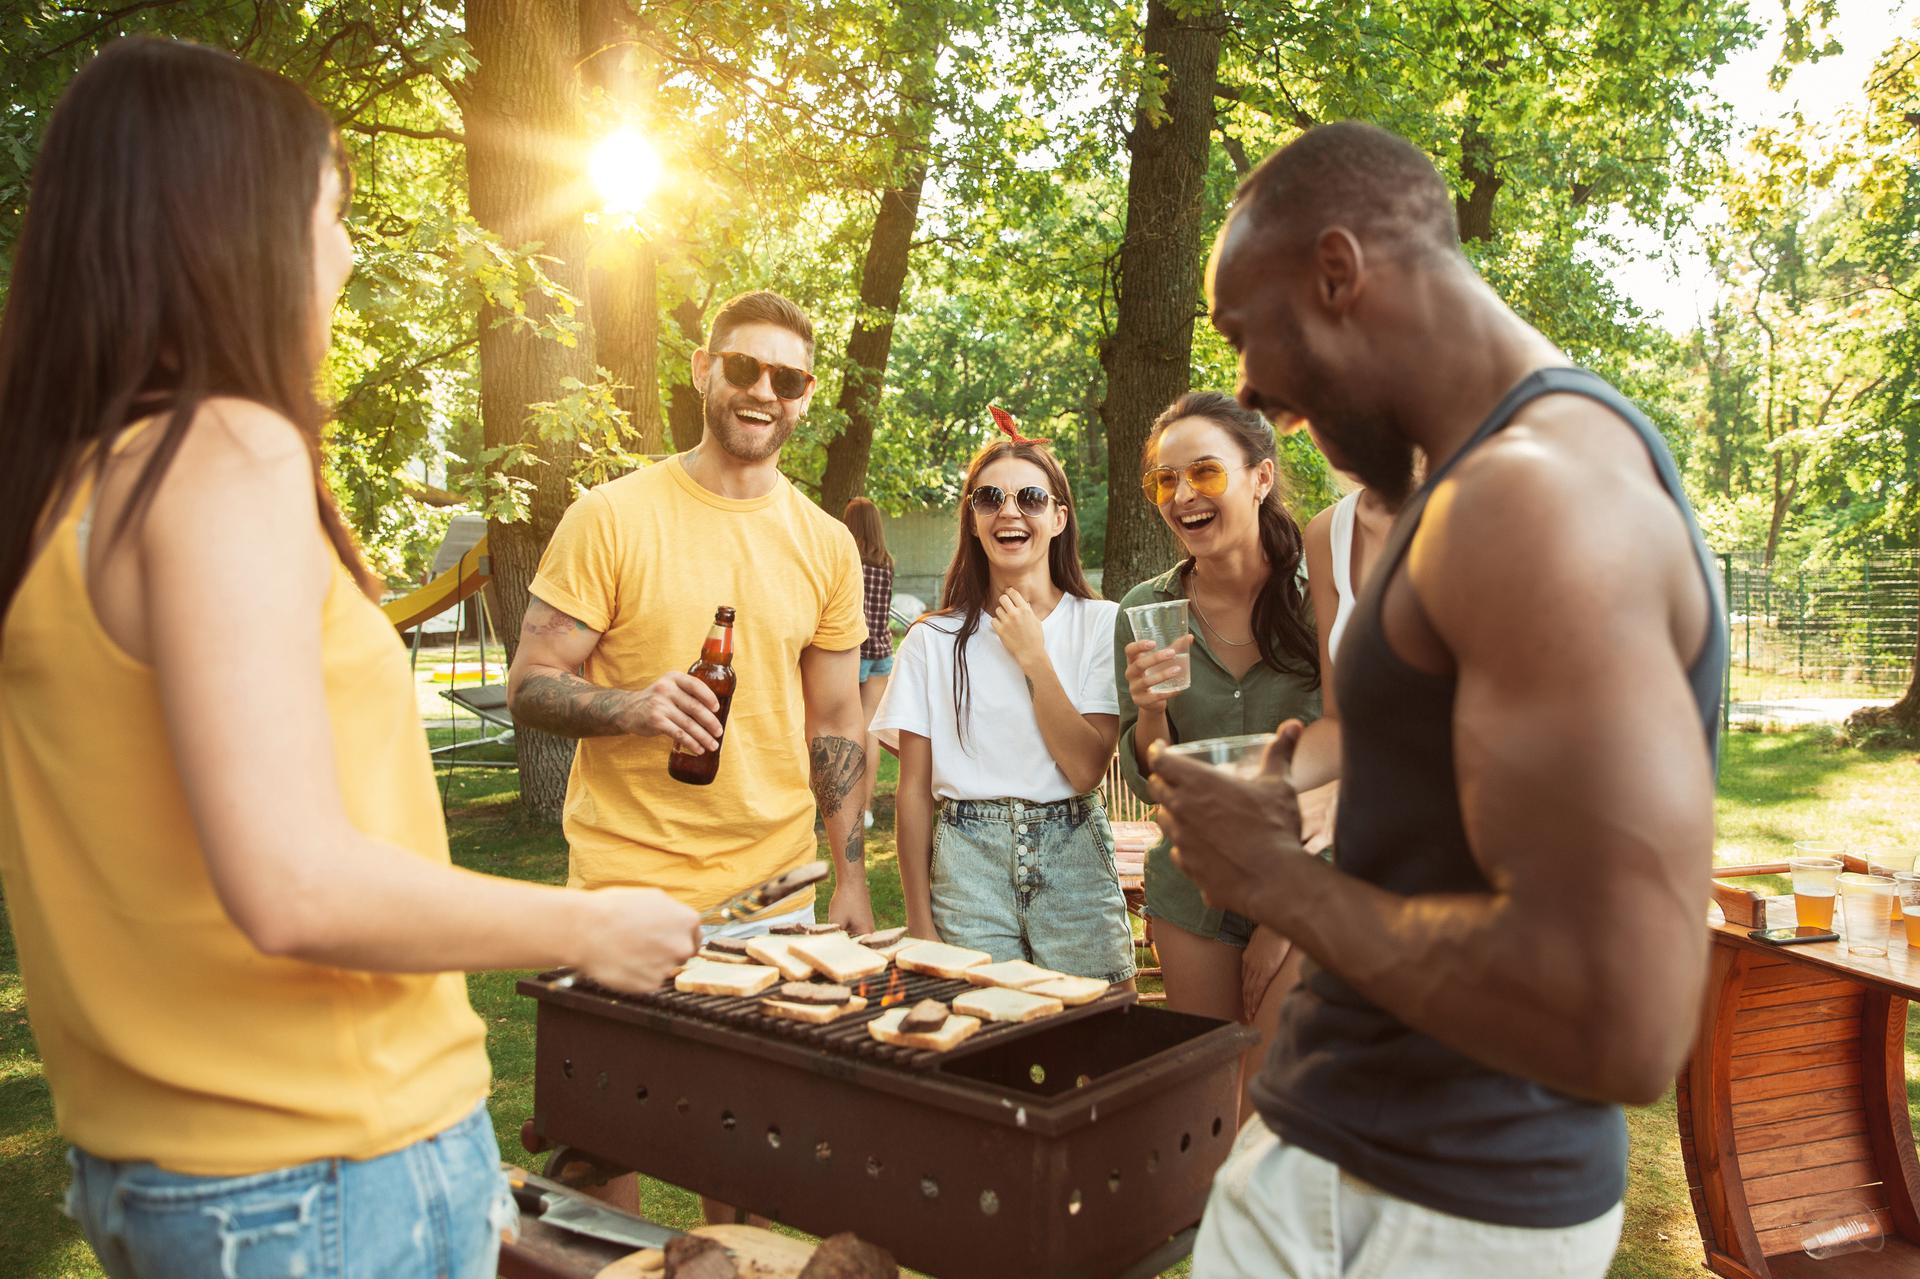 Get Your Backyard Ready for a Full Summer of Entertaining